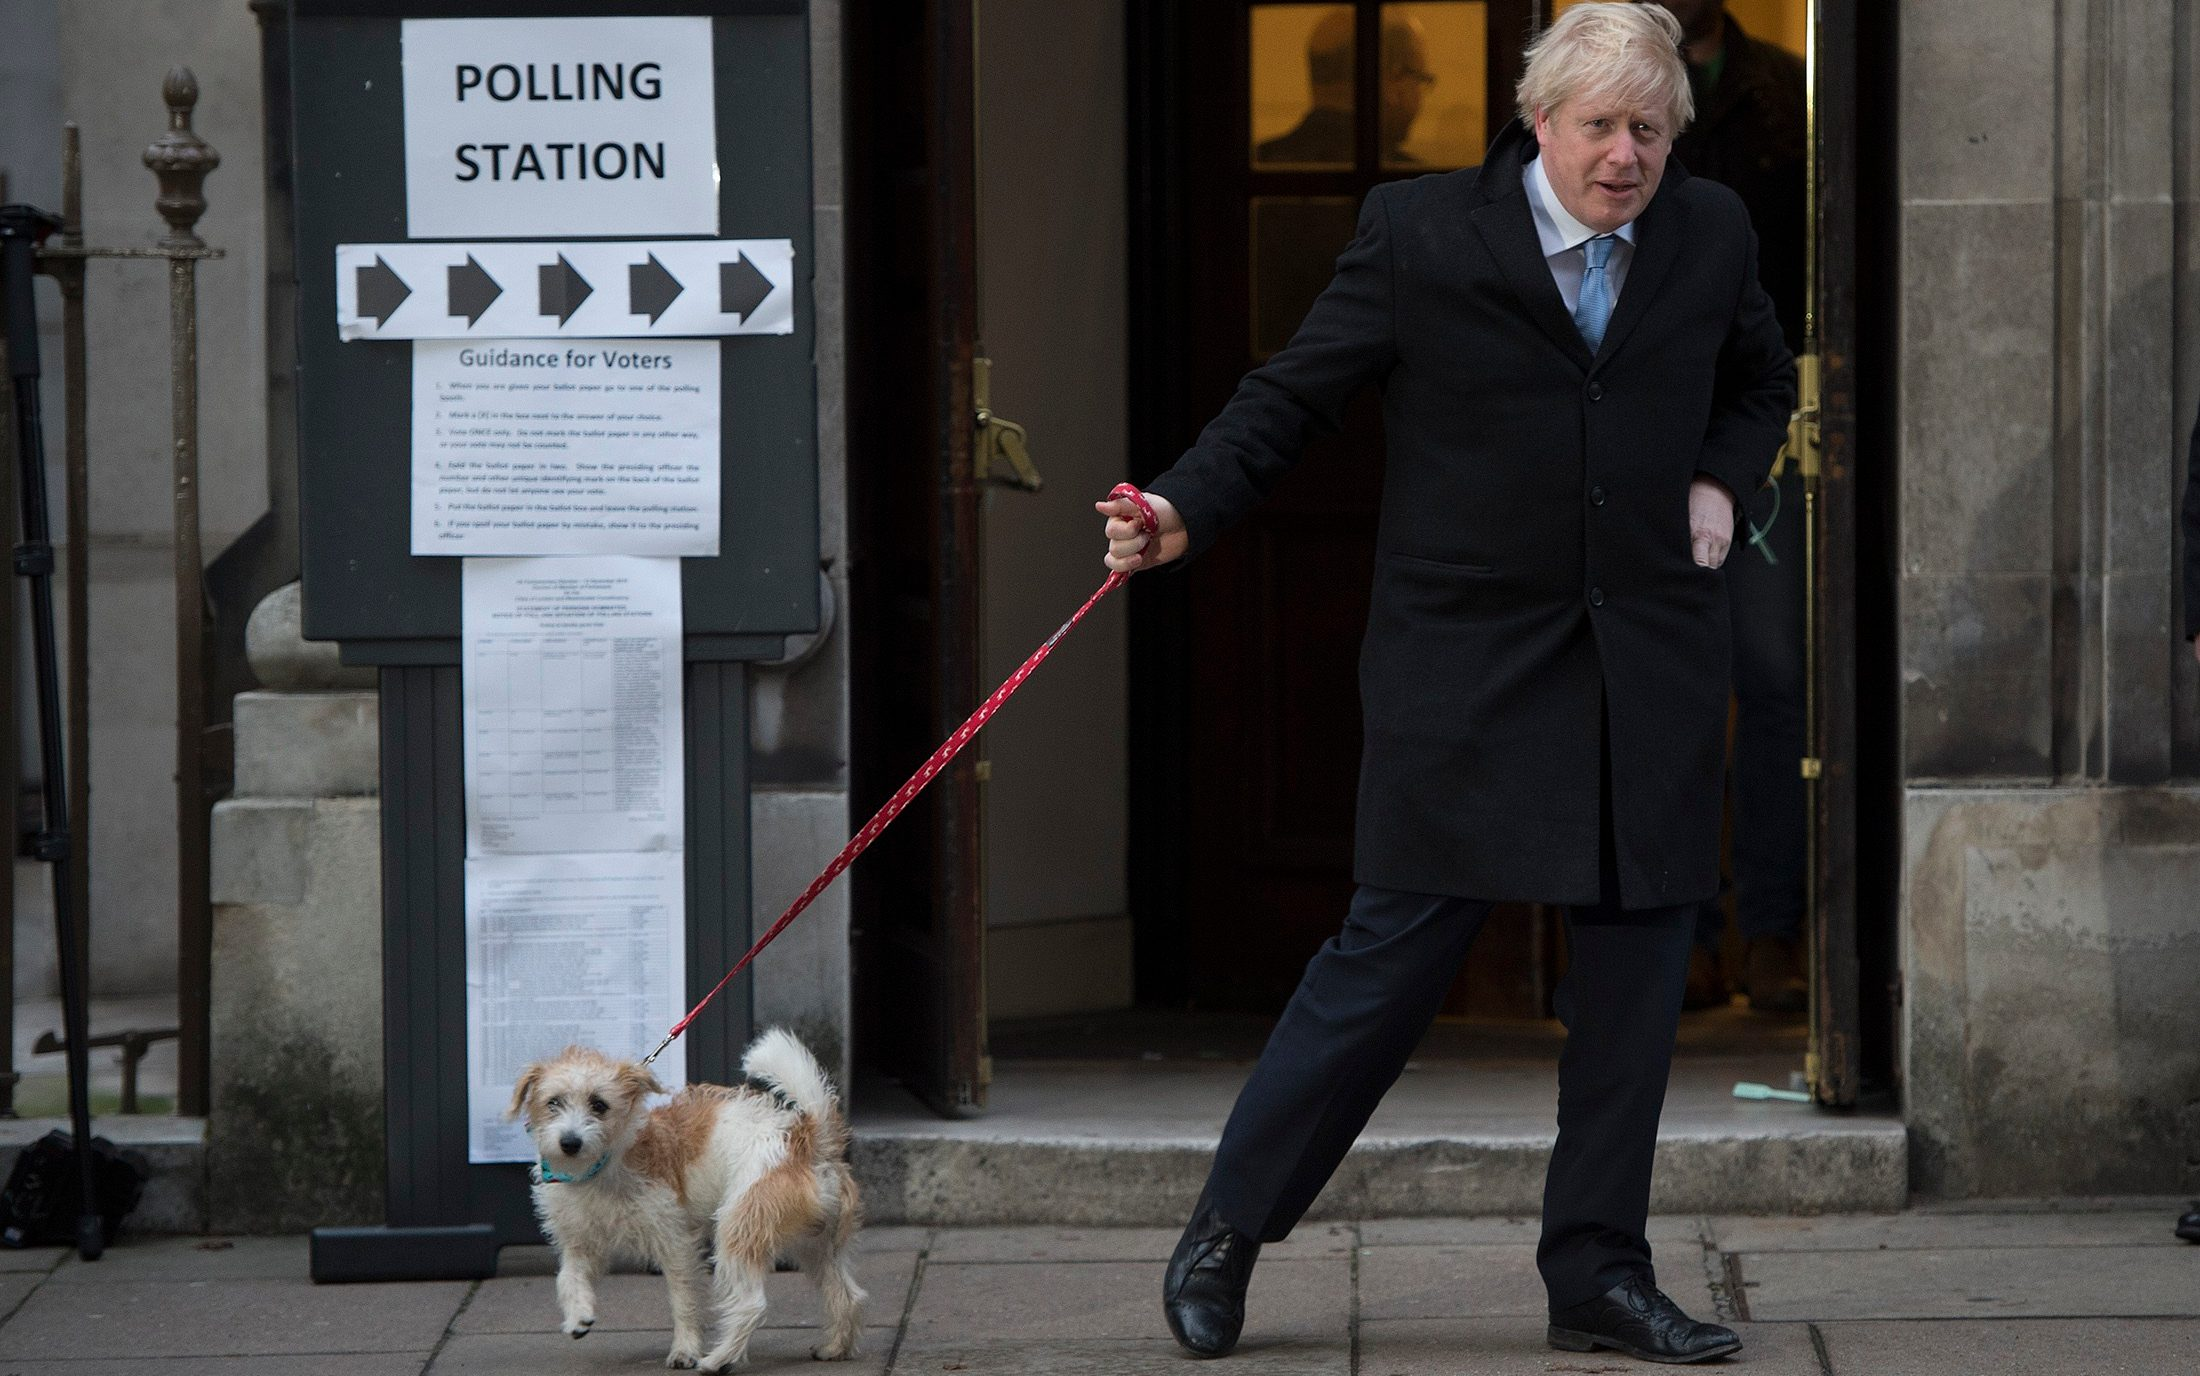 Dogs at Polling Stations during the 2019 General Election, in pictures